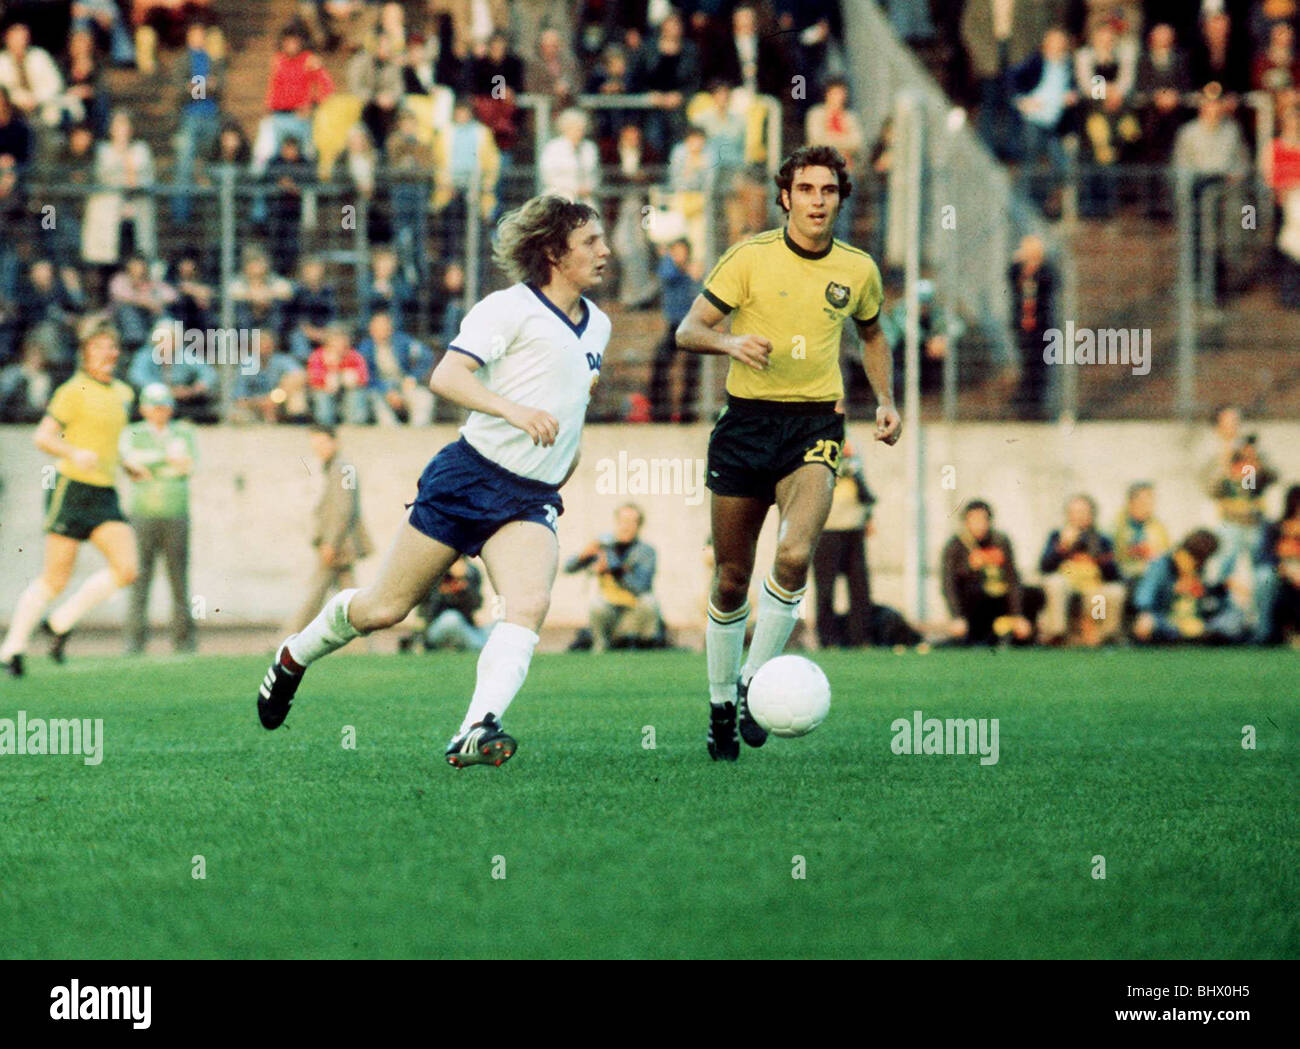 East Germany v Australia World Cup 1974 football - Stock Image